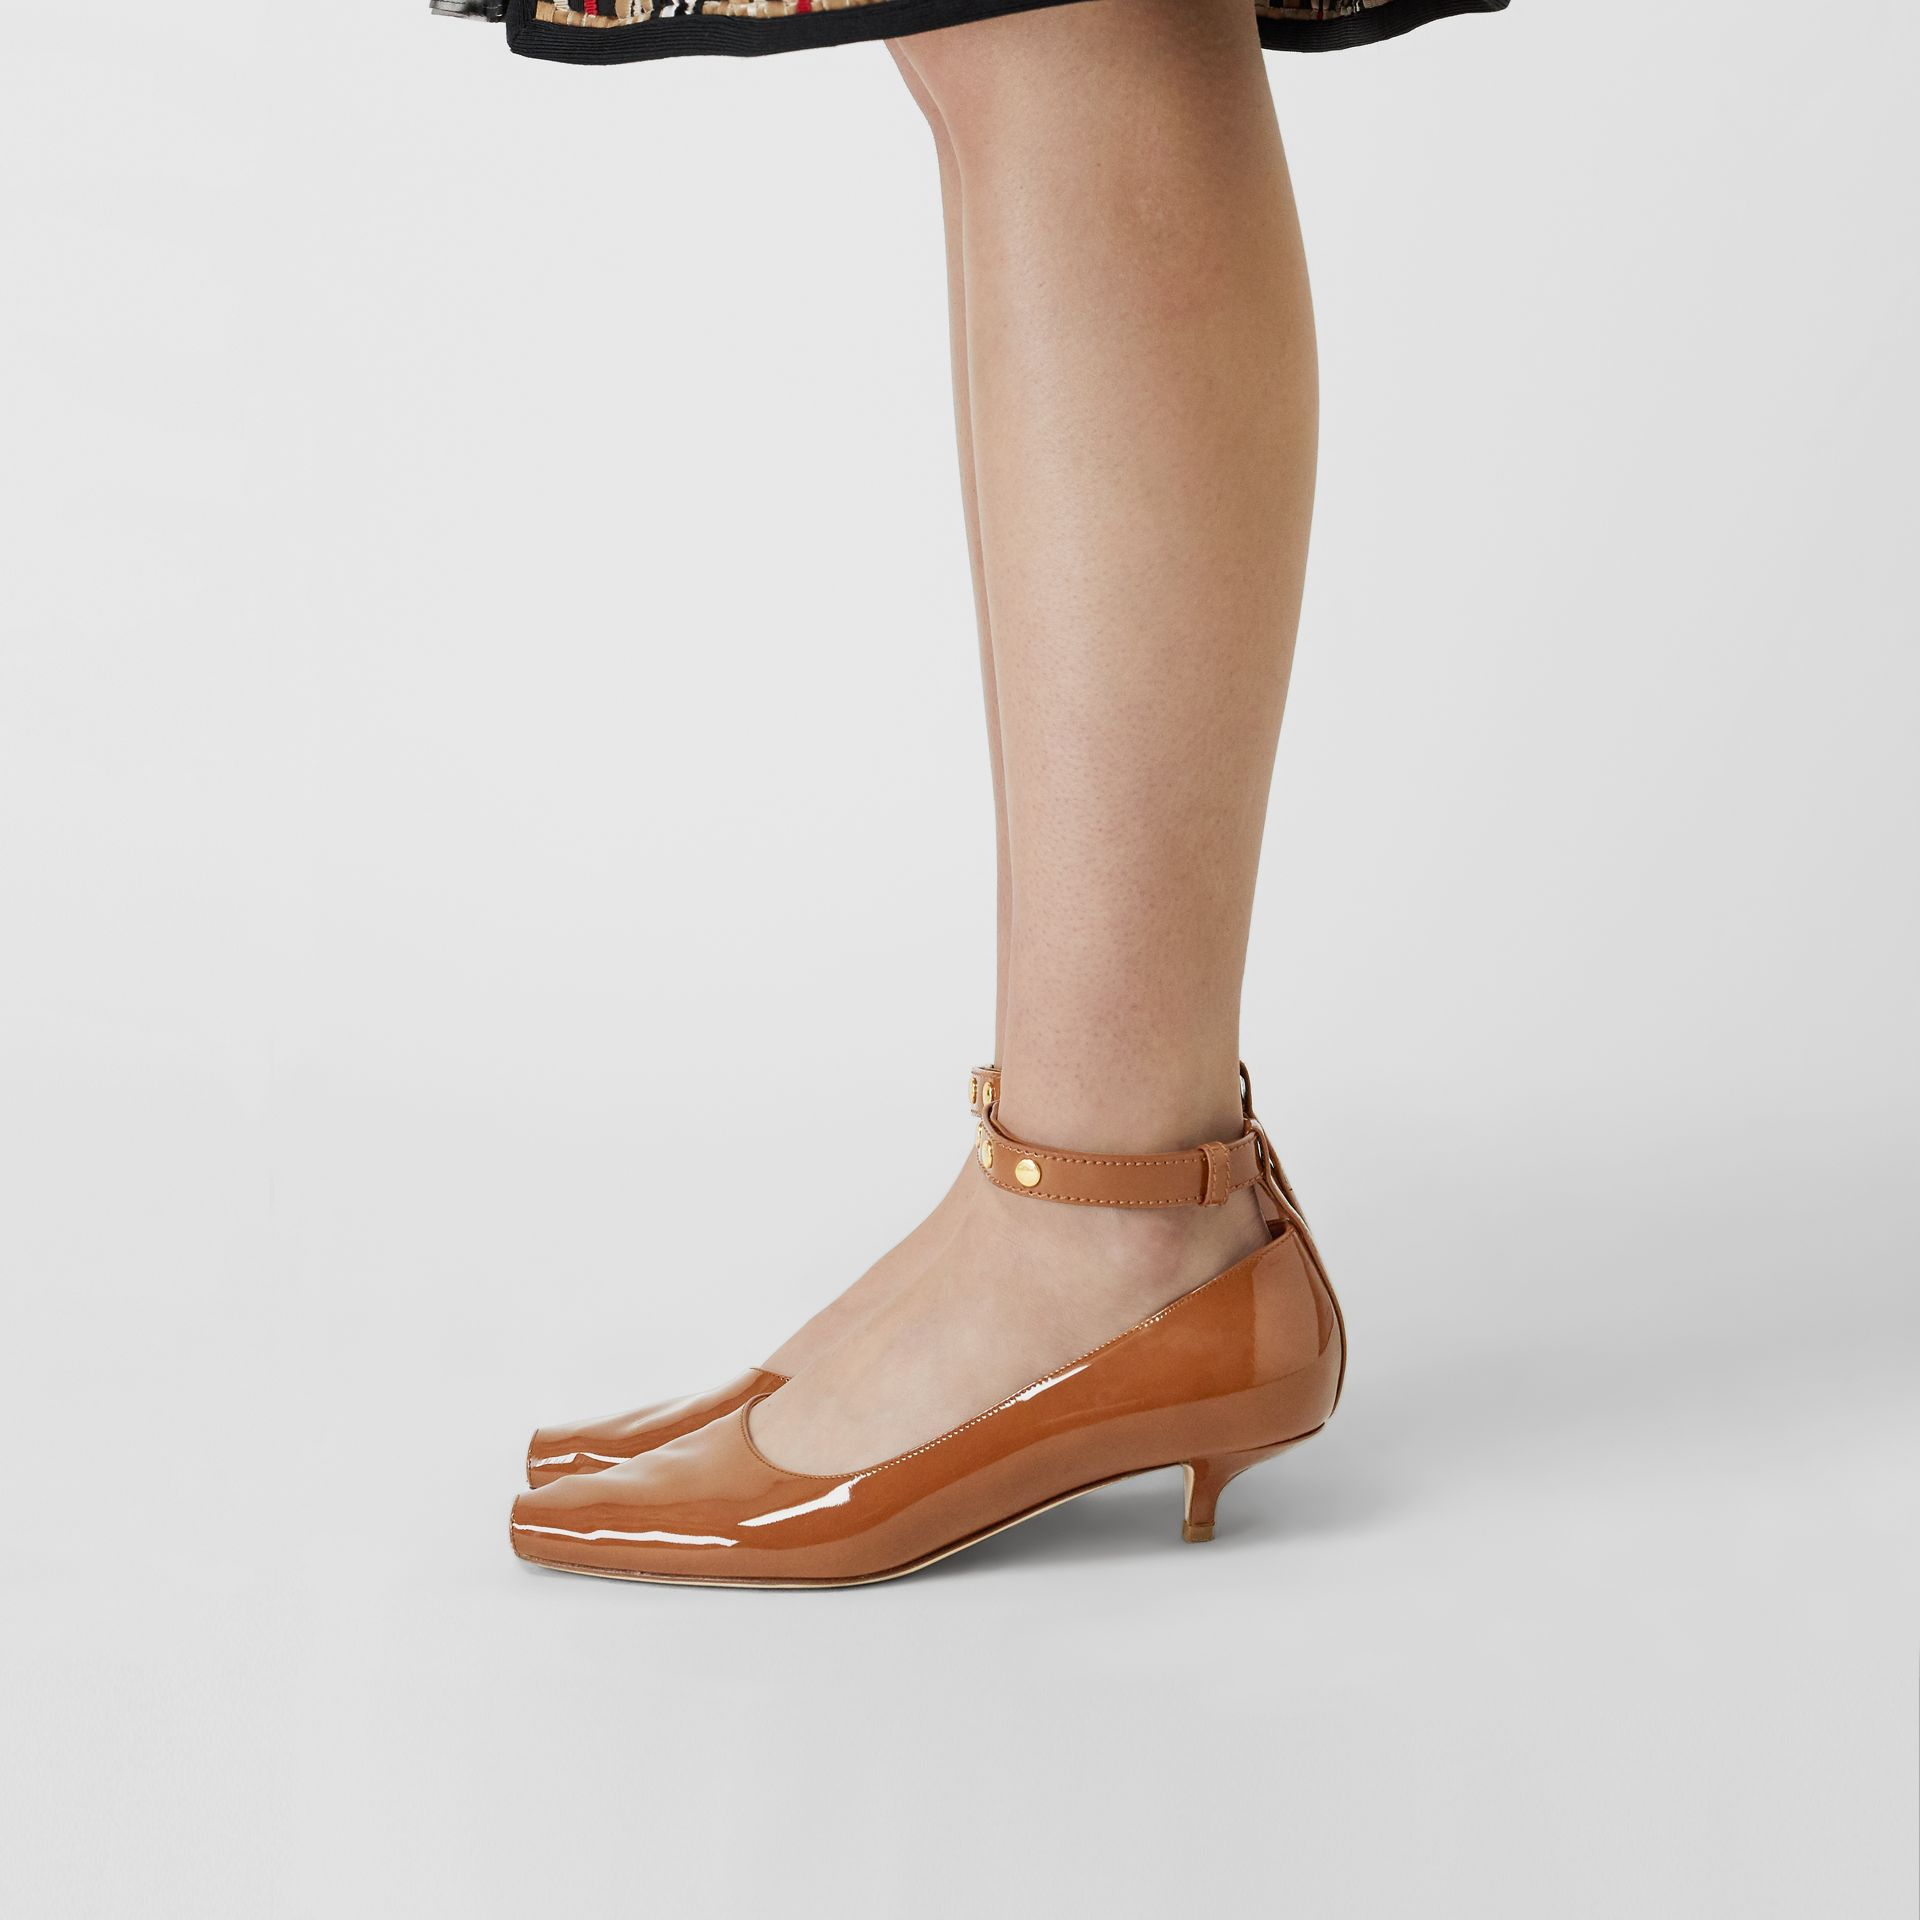 Patent Leather Peep-toe Kitten-heel Pumps in Tan - Women | Burberry Hong Kong - gallery image 2